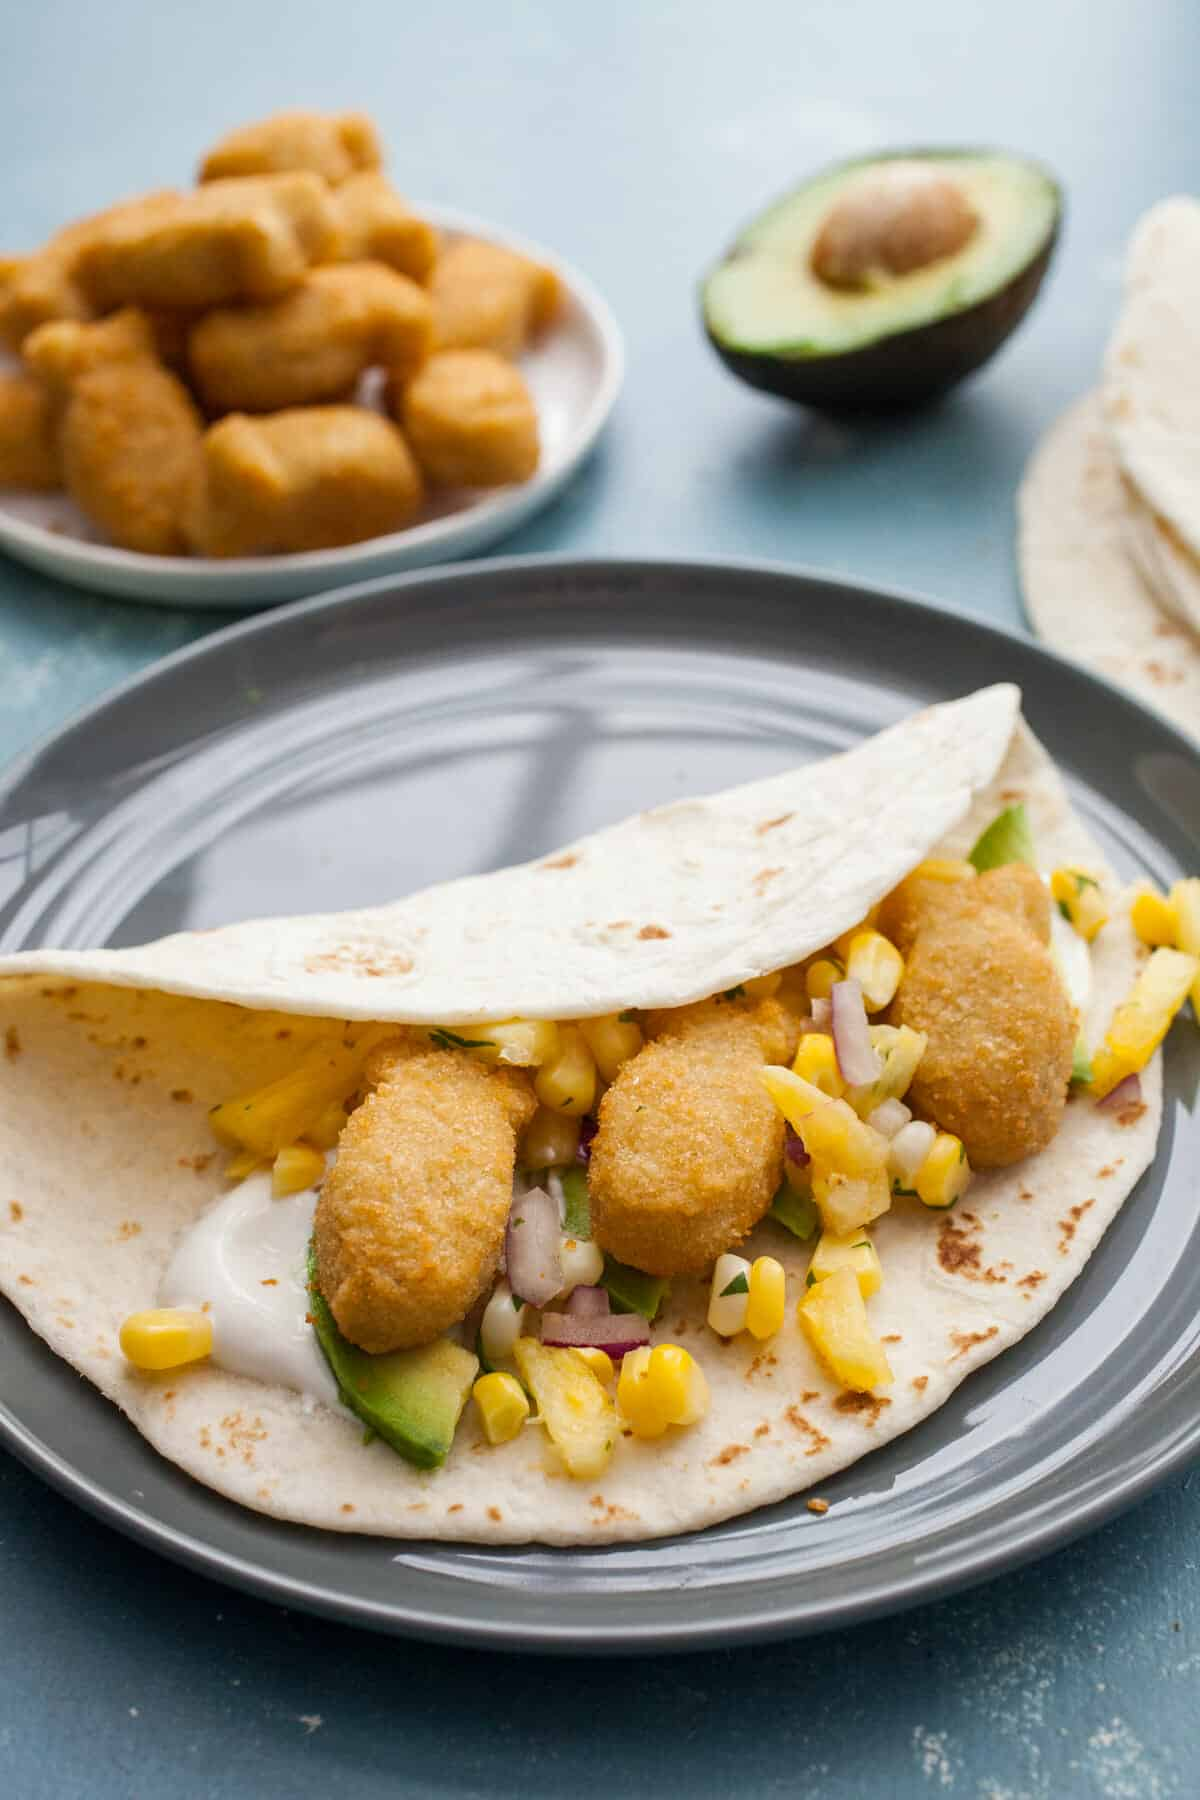 Kid Friendly Fish Tacos: These delicious fish tacos are easy to make and a simple way to get a healthy dinner on the table that kids will LOVE. Adult-approved as well! | macheesmo.com